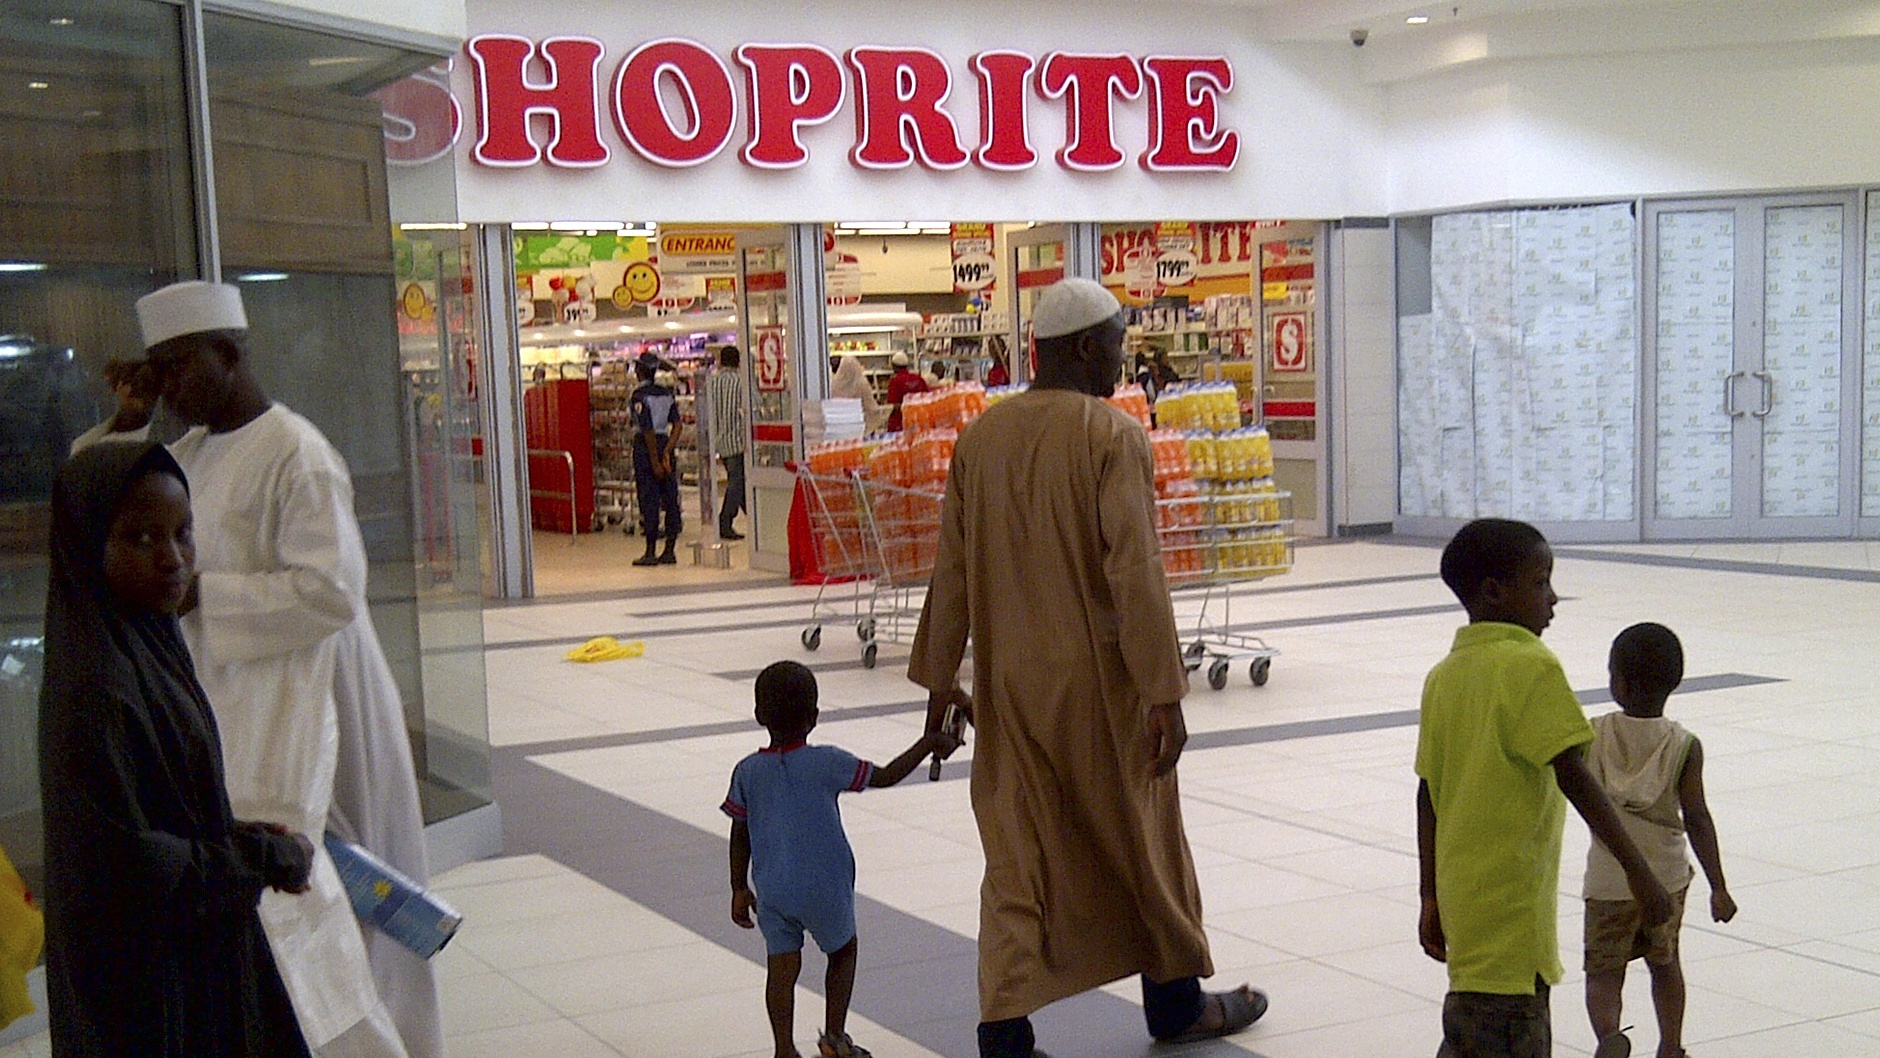 South Africa's Shoprite supermarket has the edge on Walmart's Nigeria plans